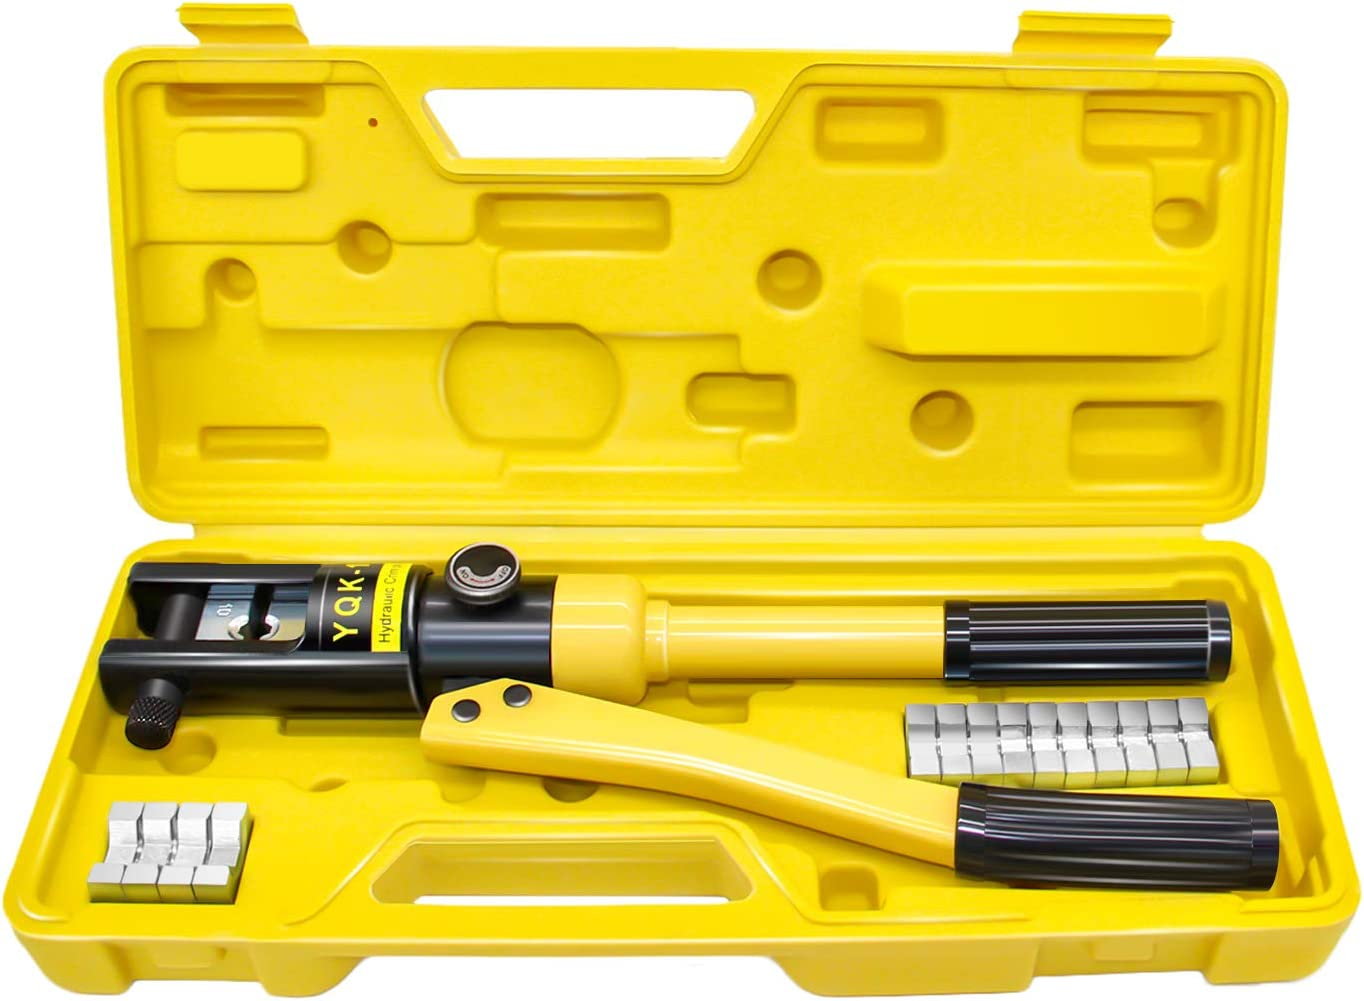 Premium Grade Hydraulic Crimping Tool for Large Wire Battery Lugs 6 to 4//0 Gauge